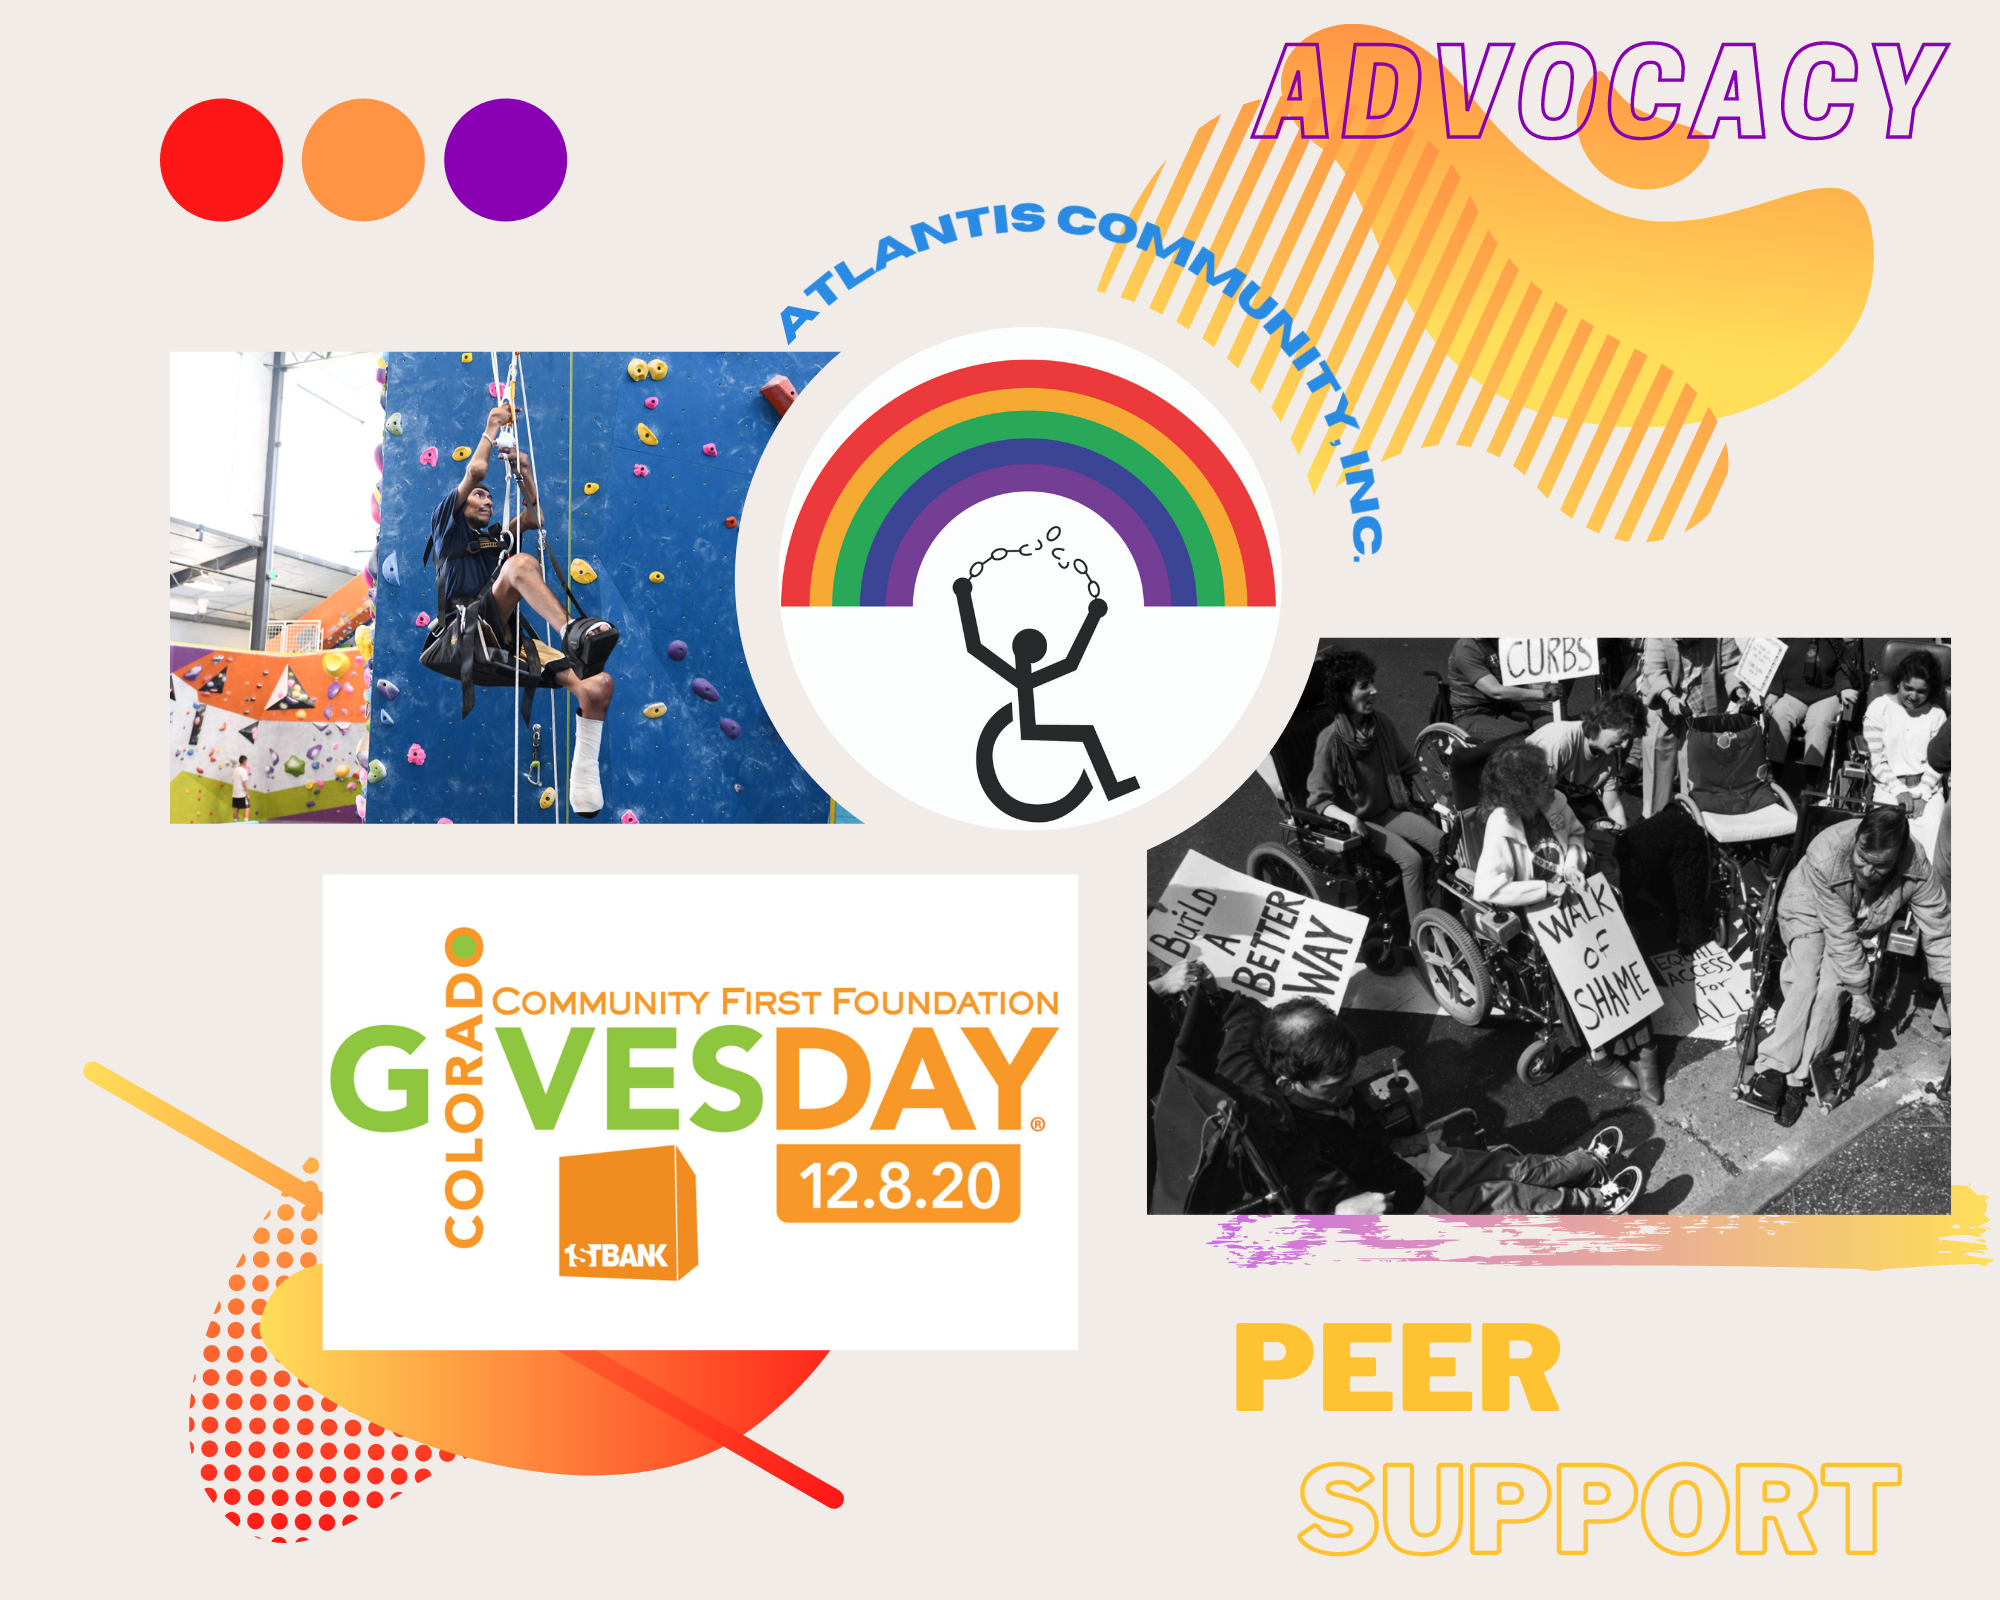 Graphic with images of the Atlantis Community, Inc., logo with a person in a wheelchair breaking chains underneath a colorful rainbow. A black and white image of an ADAPT protest with several people in wheelchairs holding up protest signs. The Colorado Gives Day Logo, Community First Day, 12.8.20, 1st Bank logo of an orange cube. A picture of a youth in a mountain climbing gym. There are colorful blobs in the background, one with an orange and red gradient and the other with a purple and blue gradient with a white outline. There are three circles next to the images, one red, one orange, and one purple. The words,